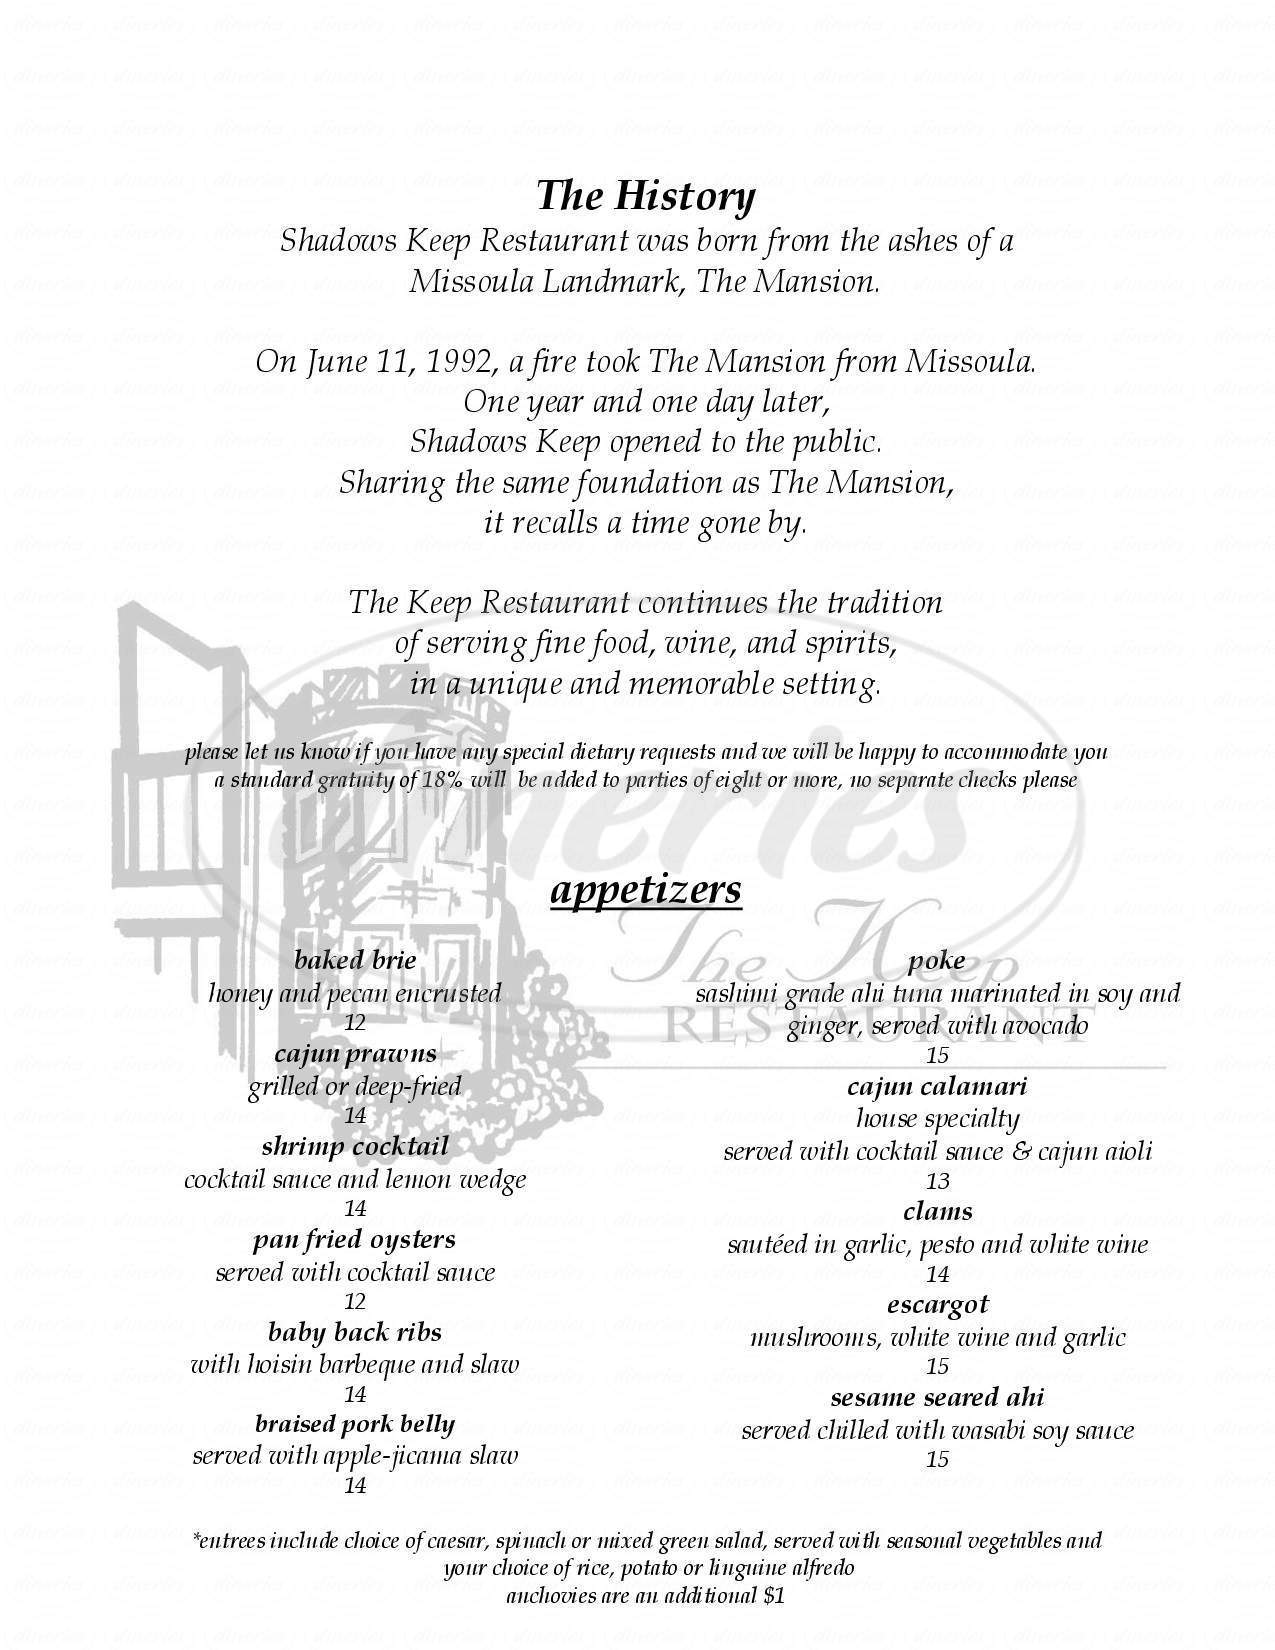 menu for The Keep Restaurant